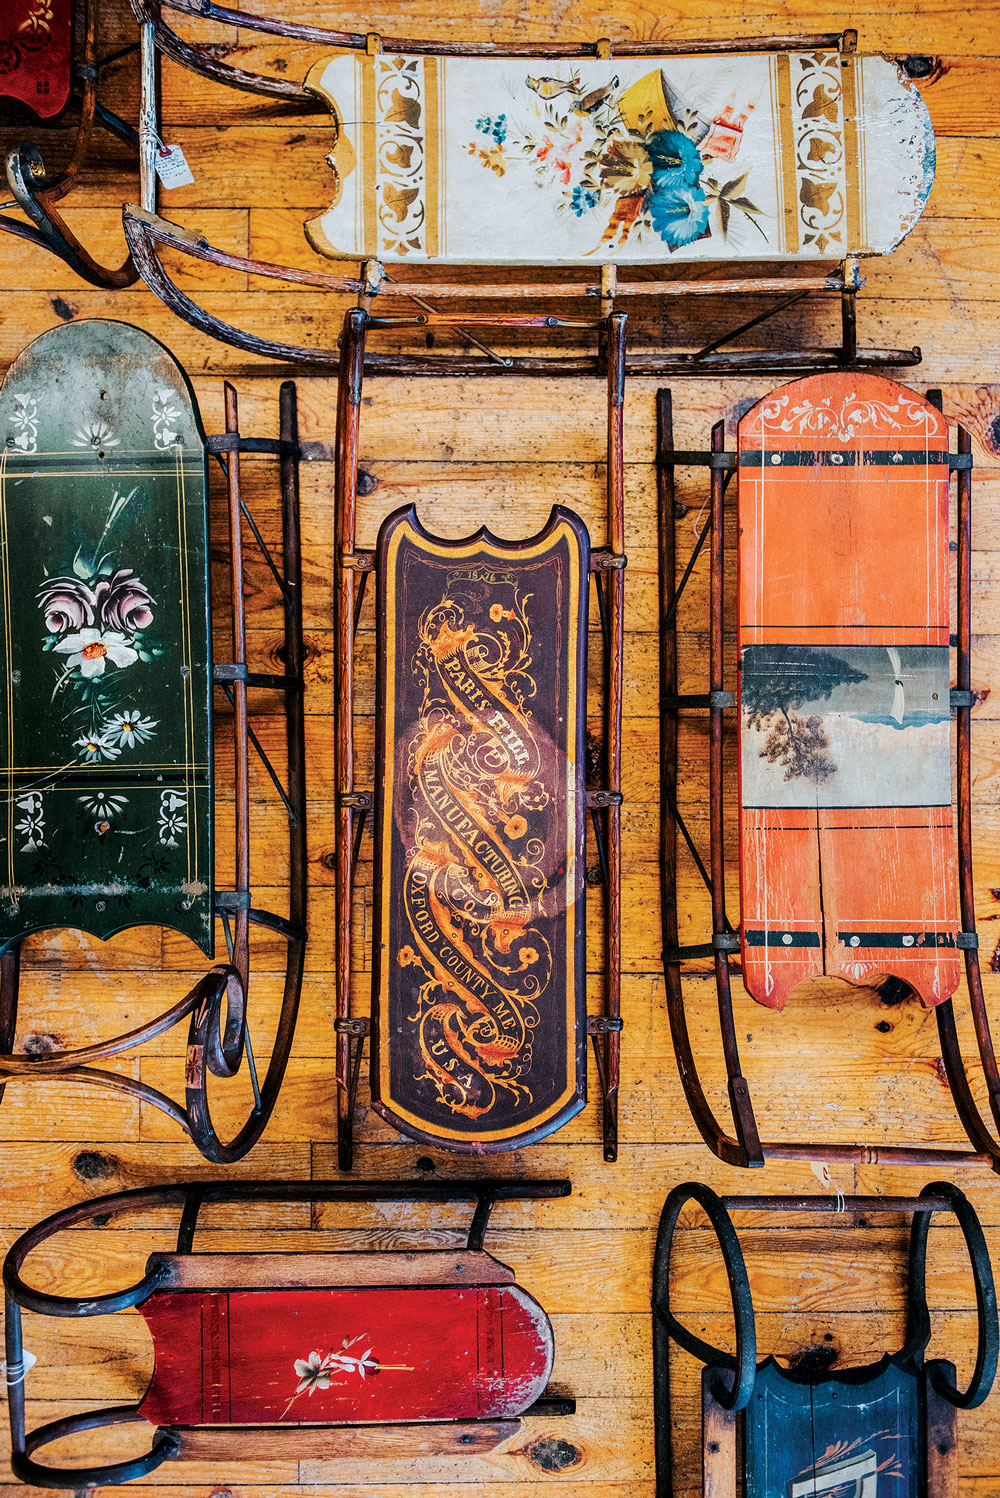 a wall of Victorian painted sleds